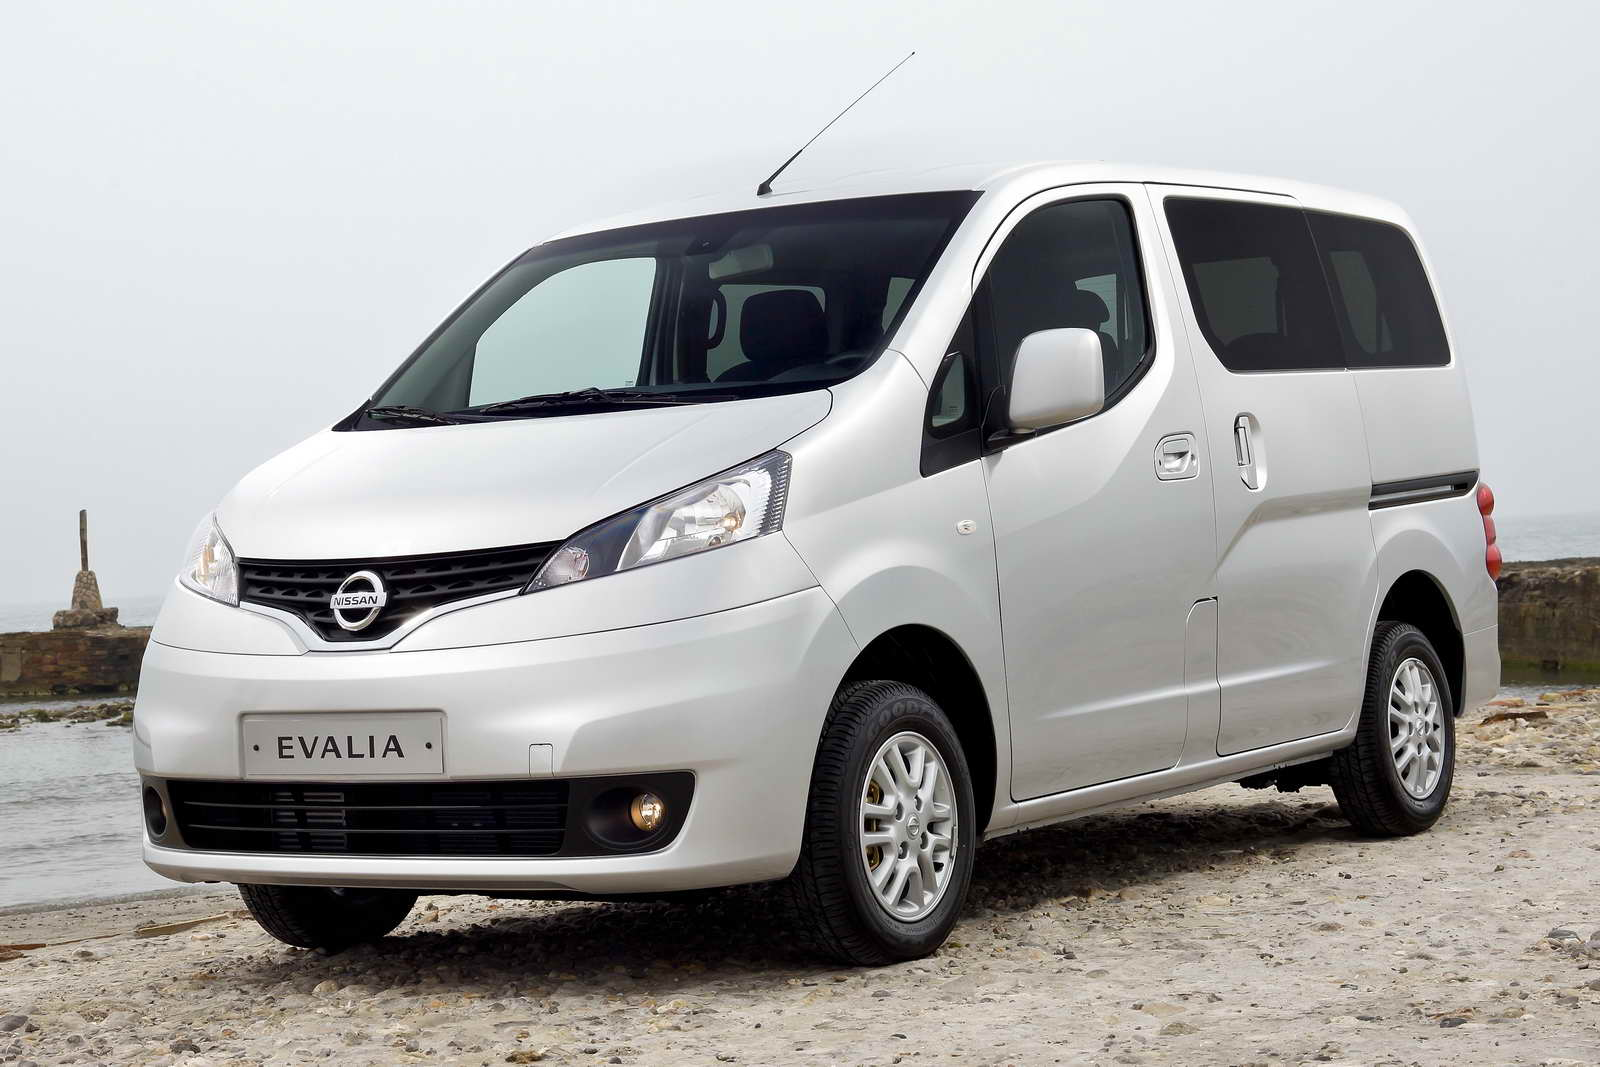 Nissan nv200 evalia images de voitures for Garage nissan utilitaire